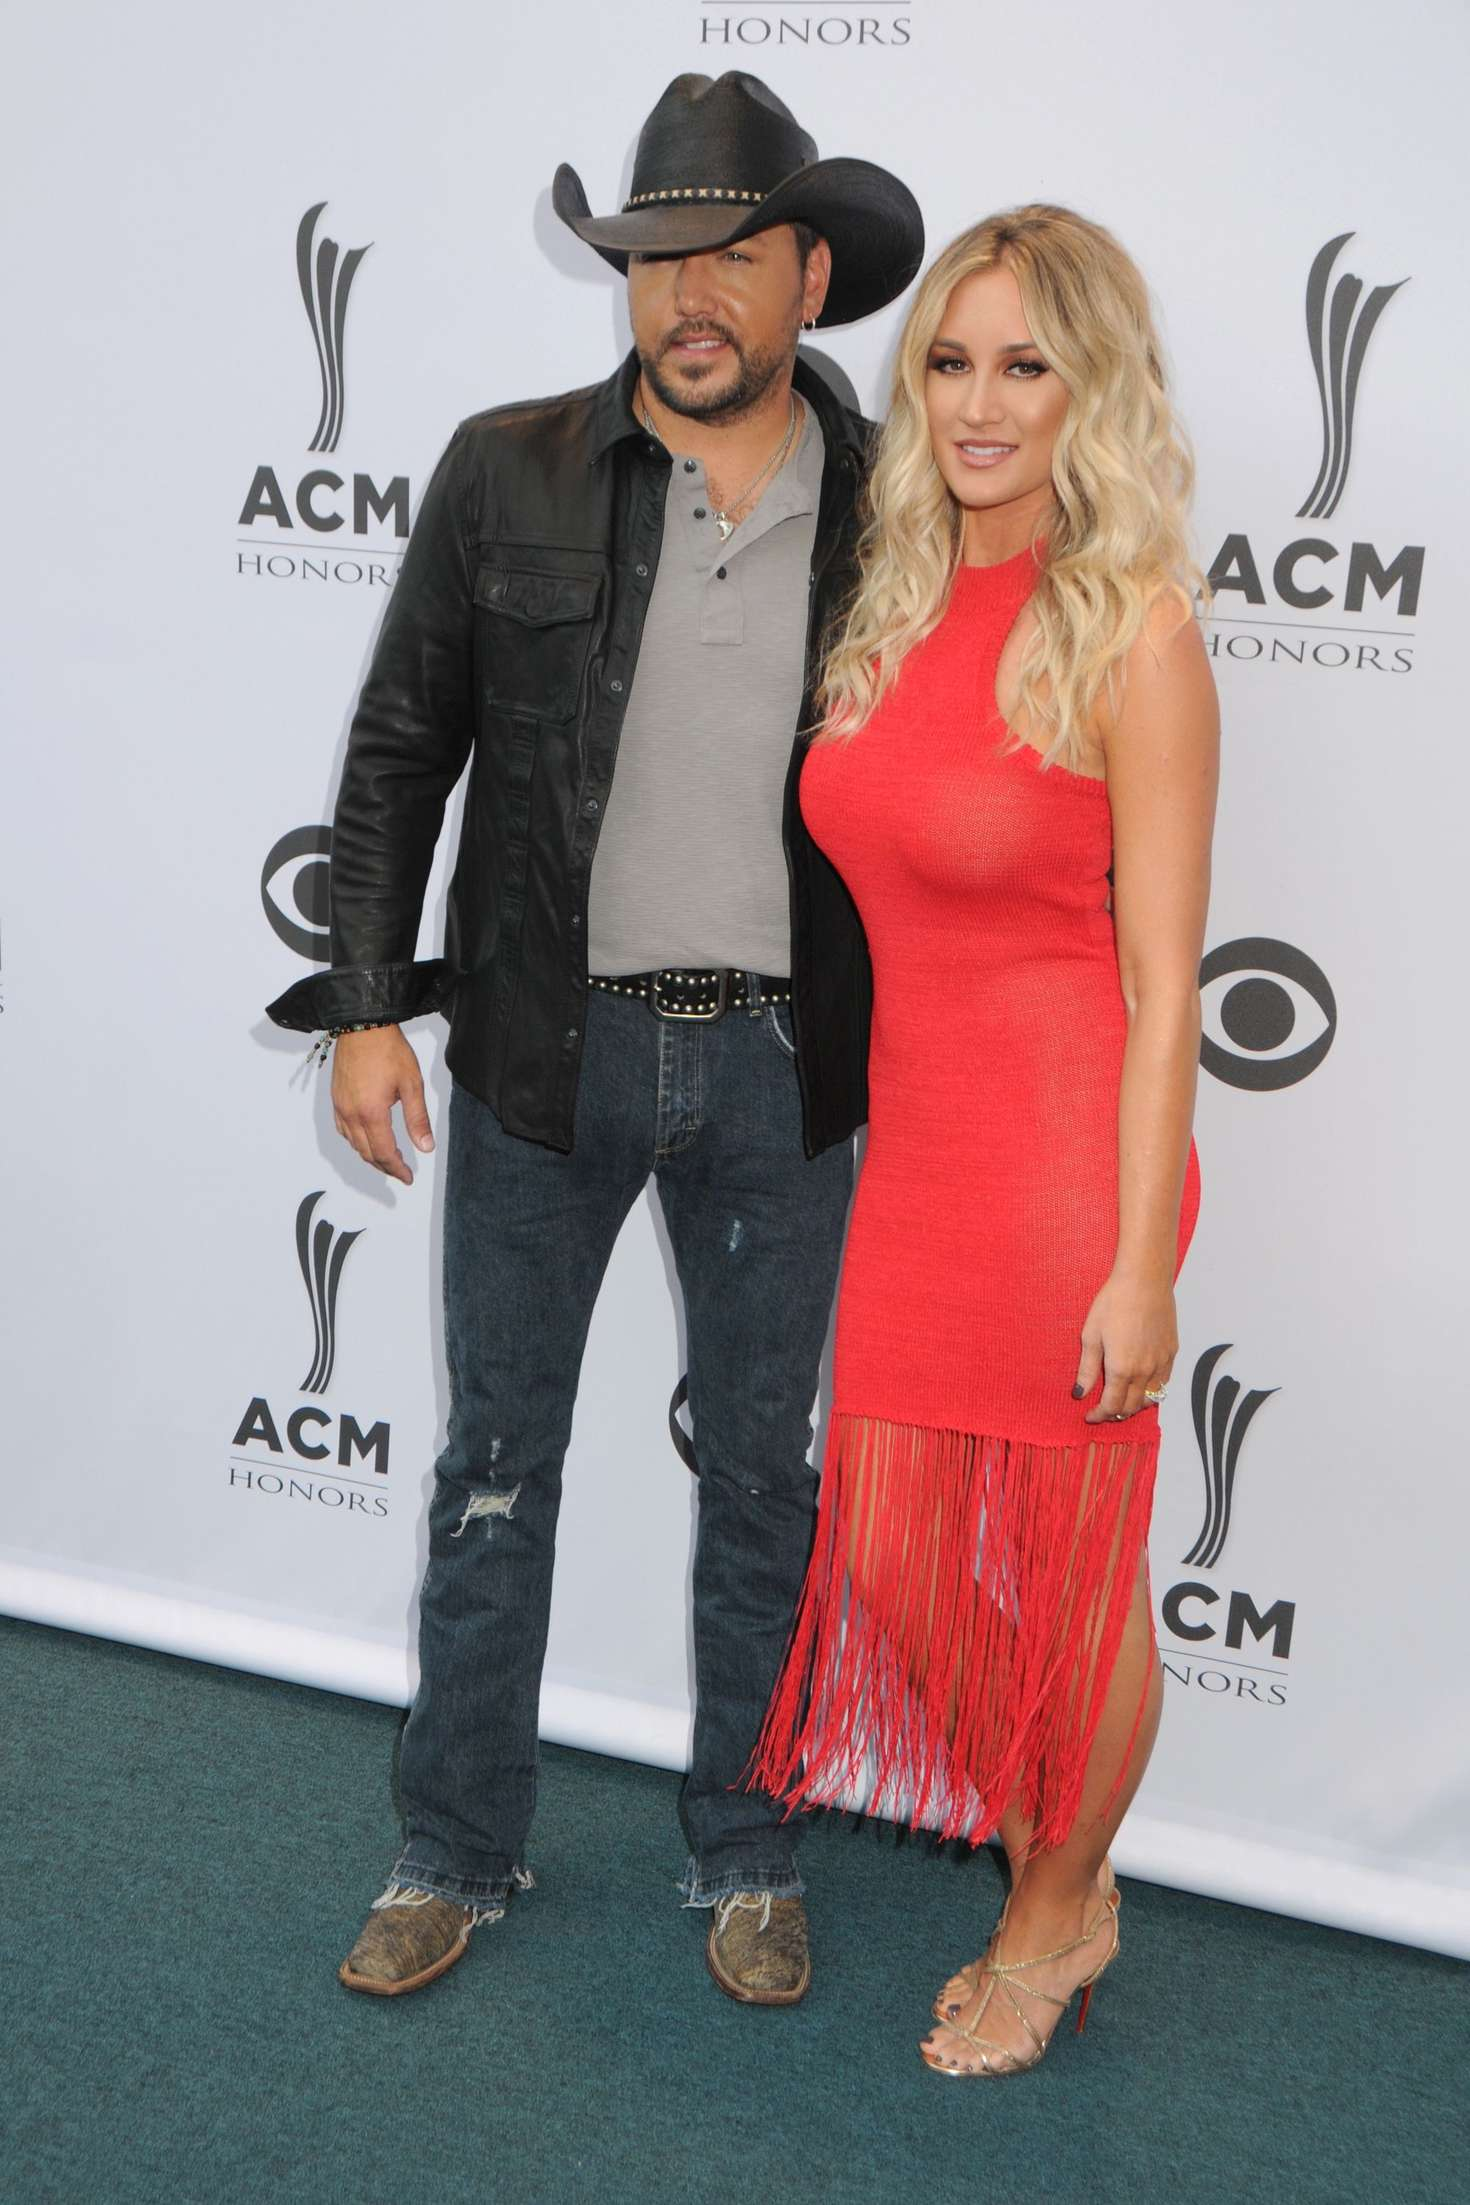 Brittany Kerr - 10th Annual ACM Honors at the Ryman Auditorium in Nashville